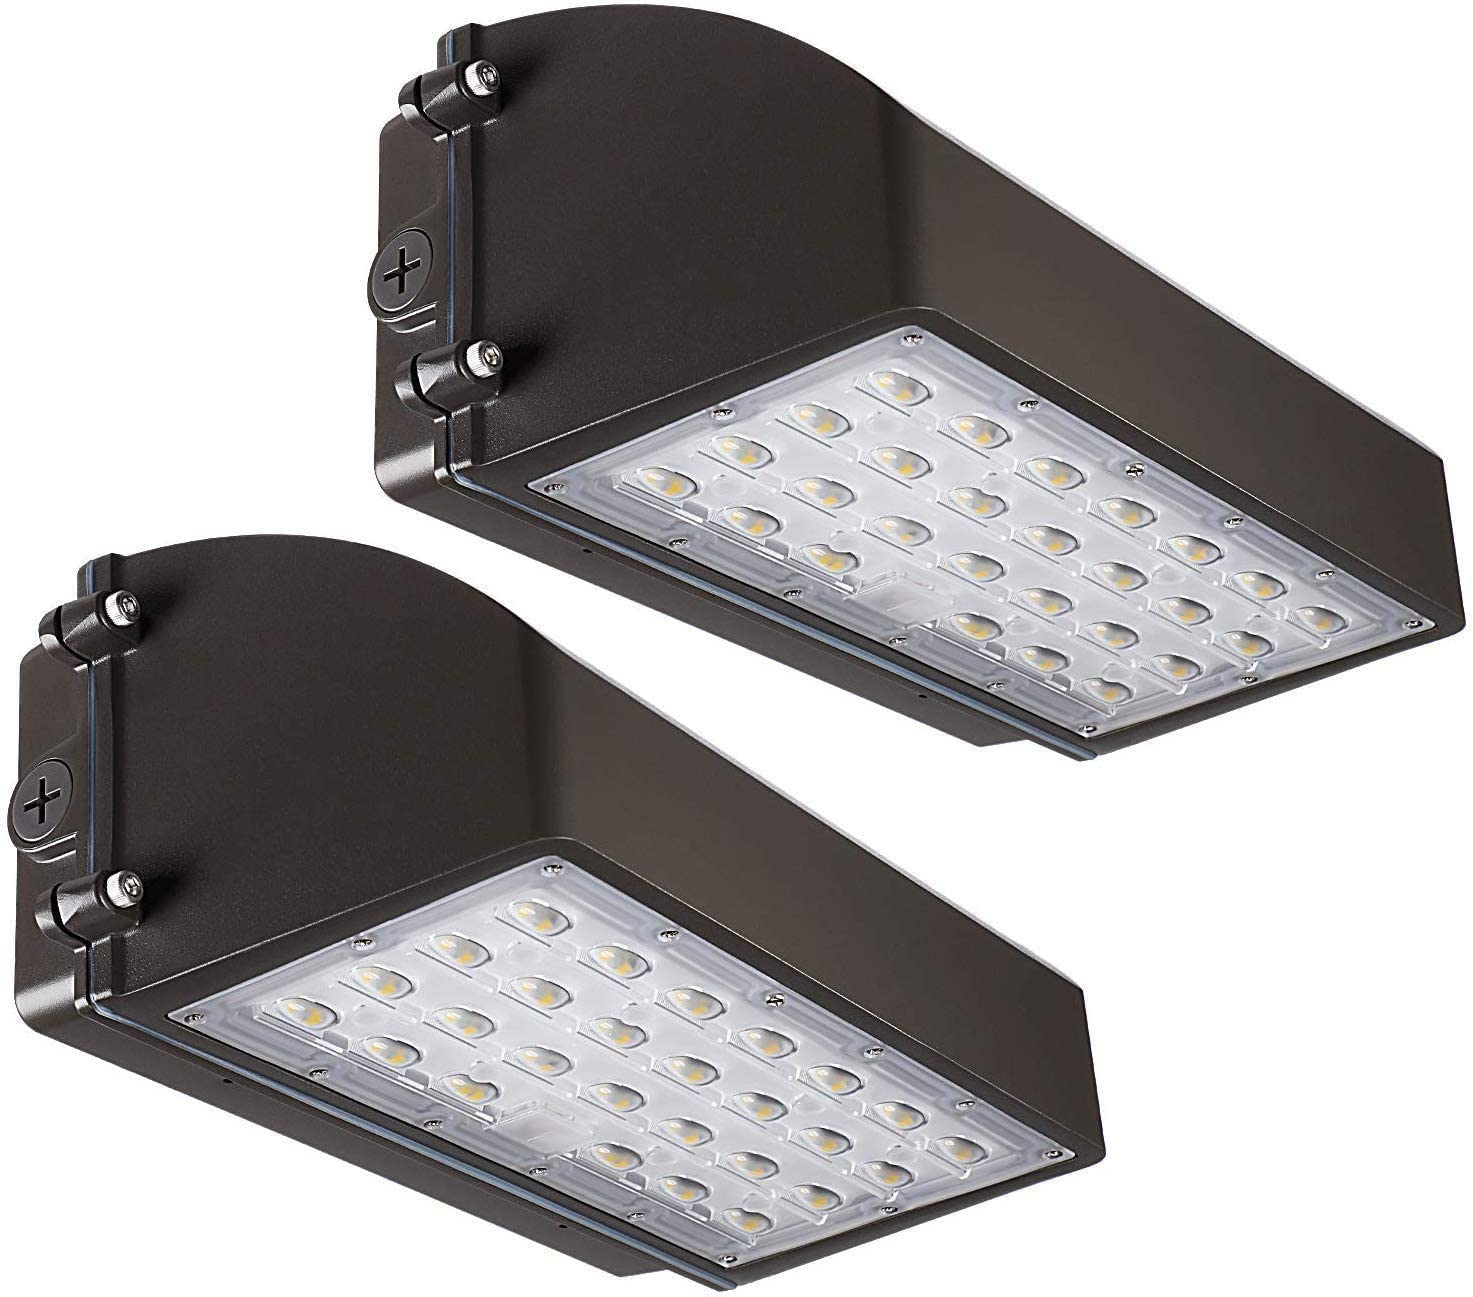 LEONLITE LED Full Cutoff Wall Pack, 45W 420W Eqv. 5850lm, UL Listed Dimmable Outdoor Commercial Area Lighting, IP65 Waterproof, for Warehouse, Backyard, Garage, Pack of 2